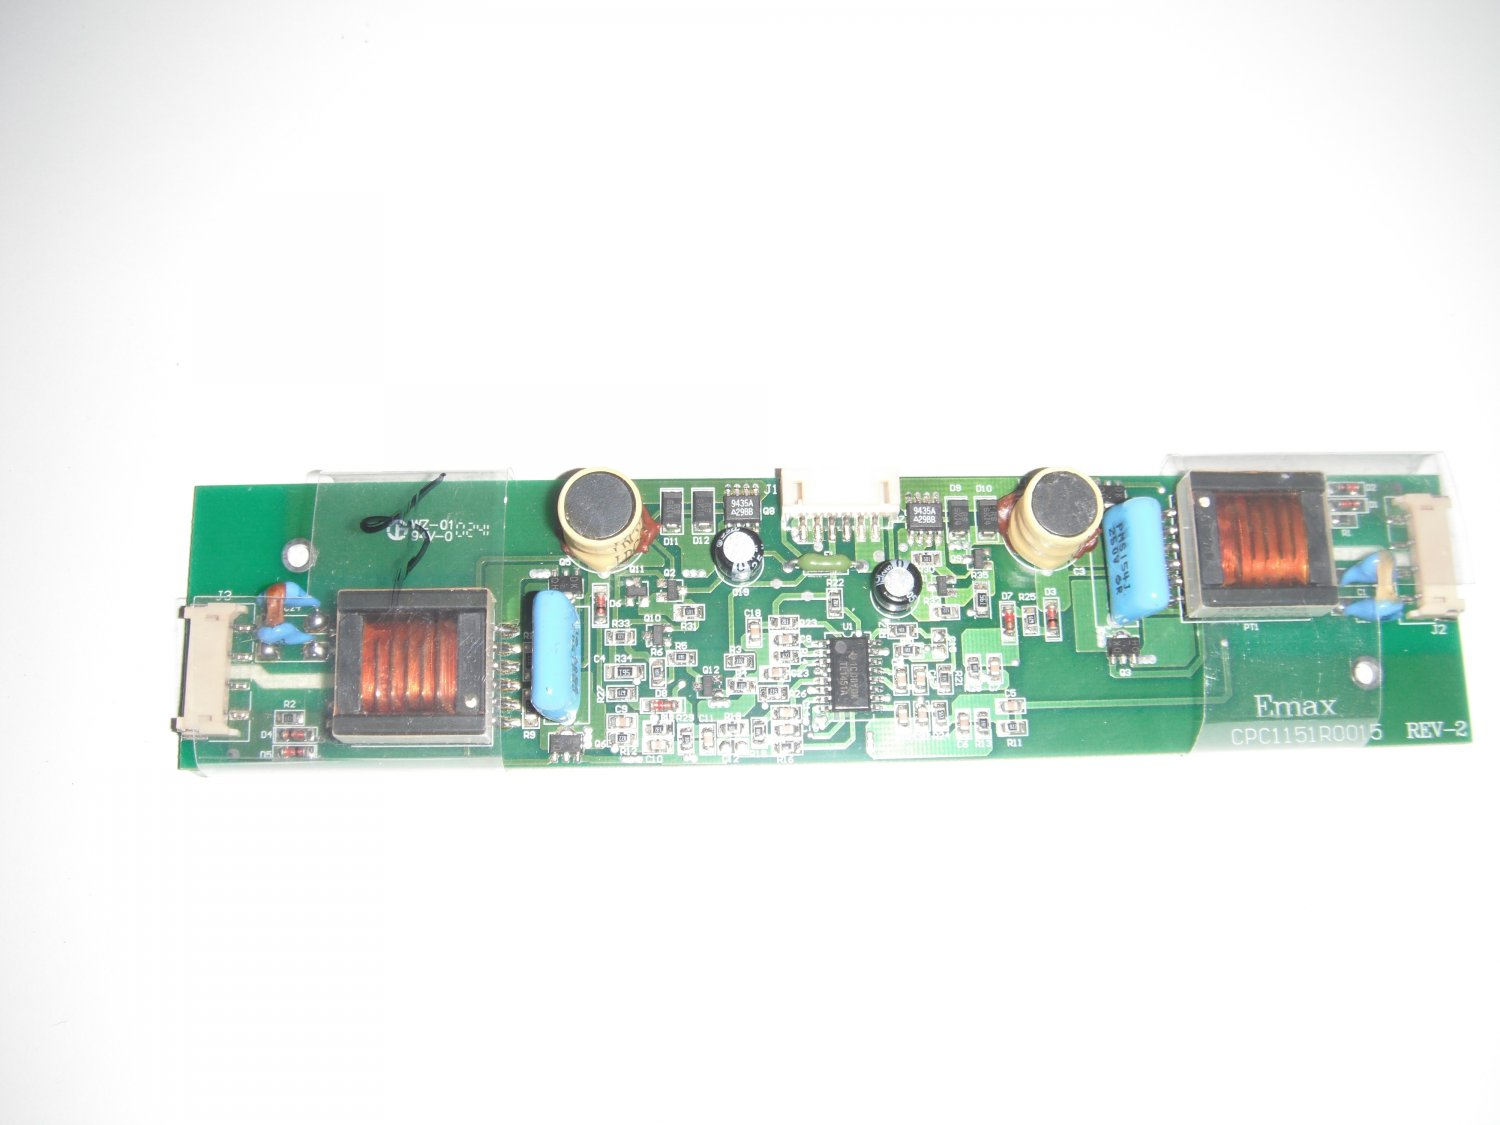 CPC1151R0015 Inverter -- Manufactured by Emax for 4 CCFL Lamps TFT